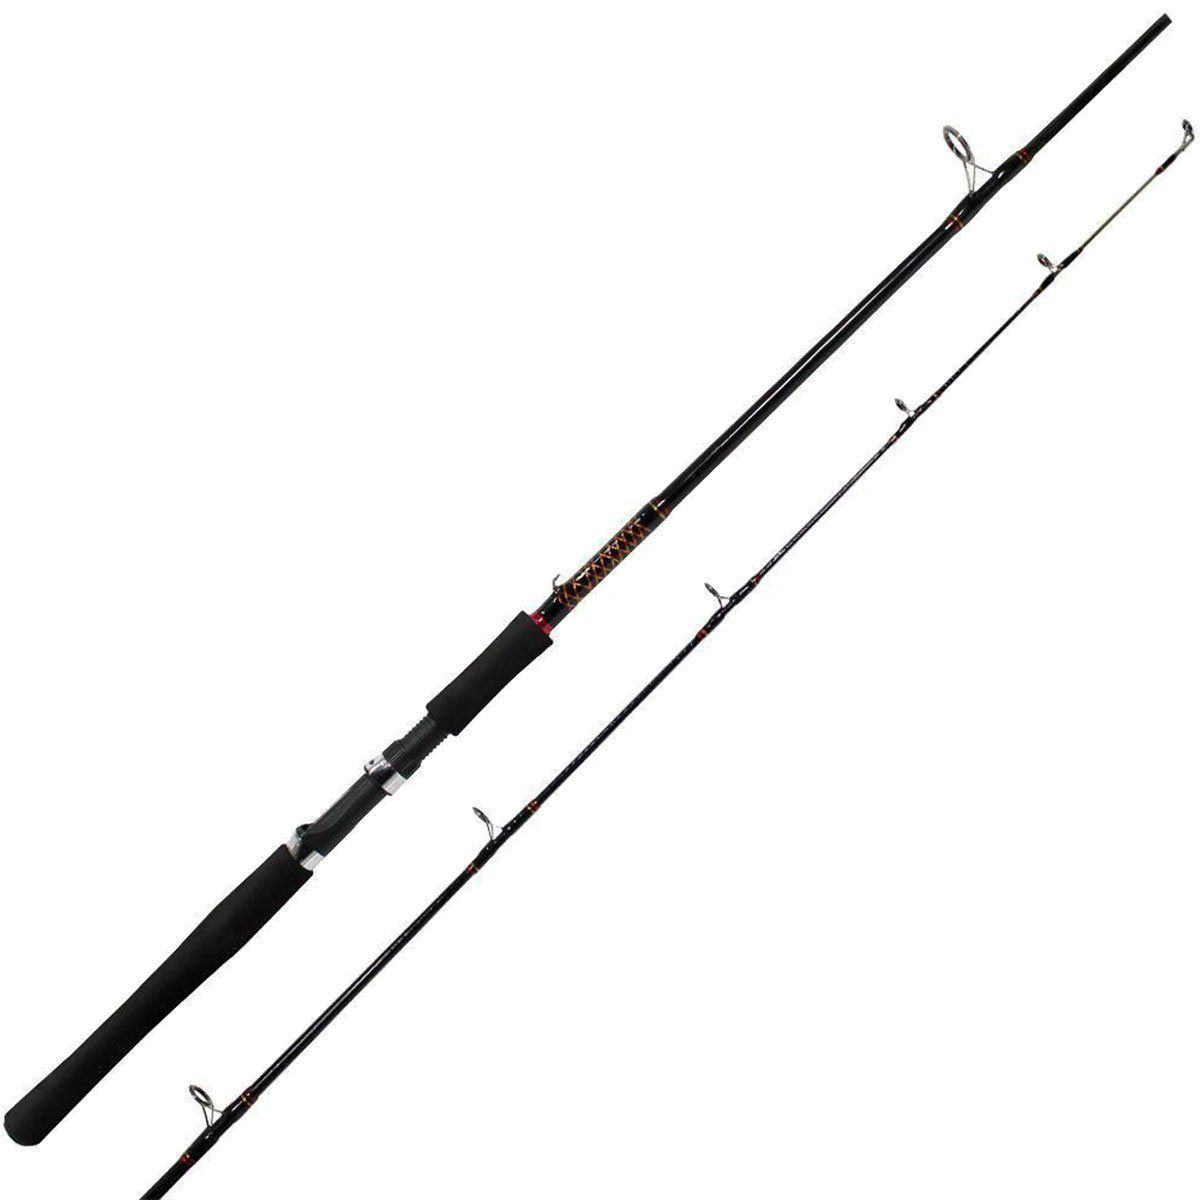 Vara Saint Plus Stick 601-SP Molinete 1,80m 5? 9?? 20-40lb